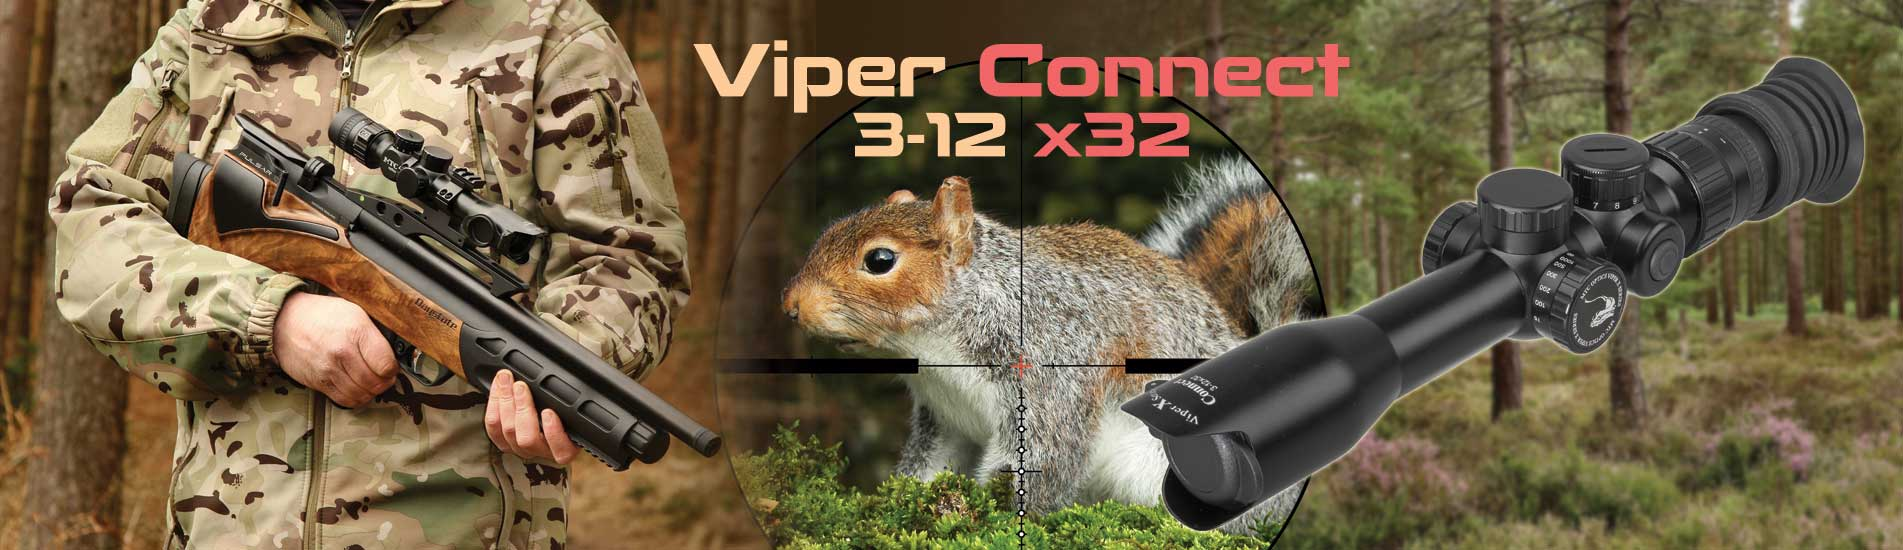 MTC-Viper-Connect-32-Slider-1903-550